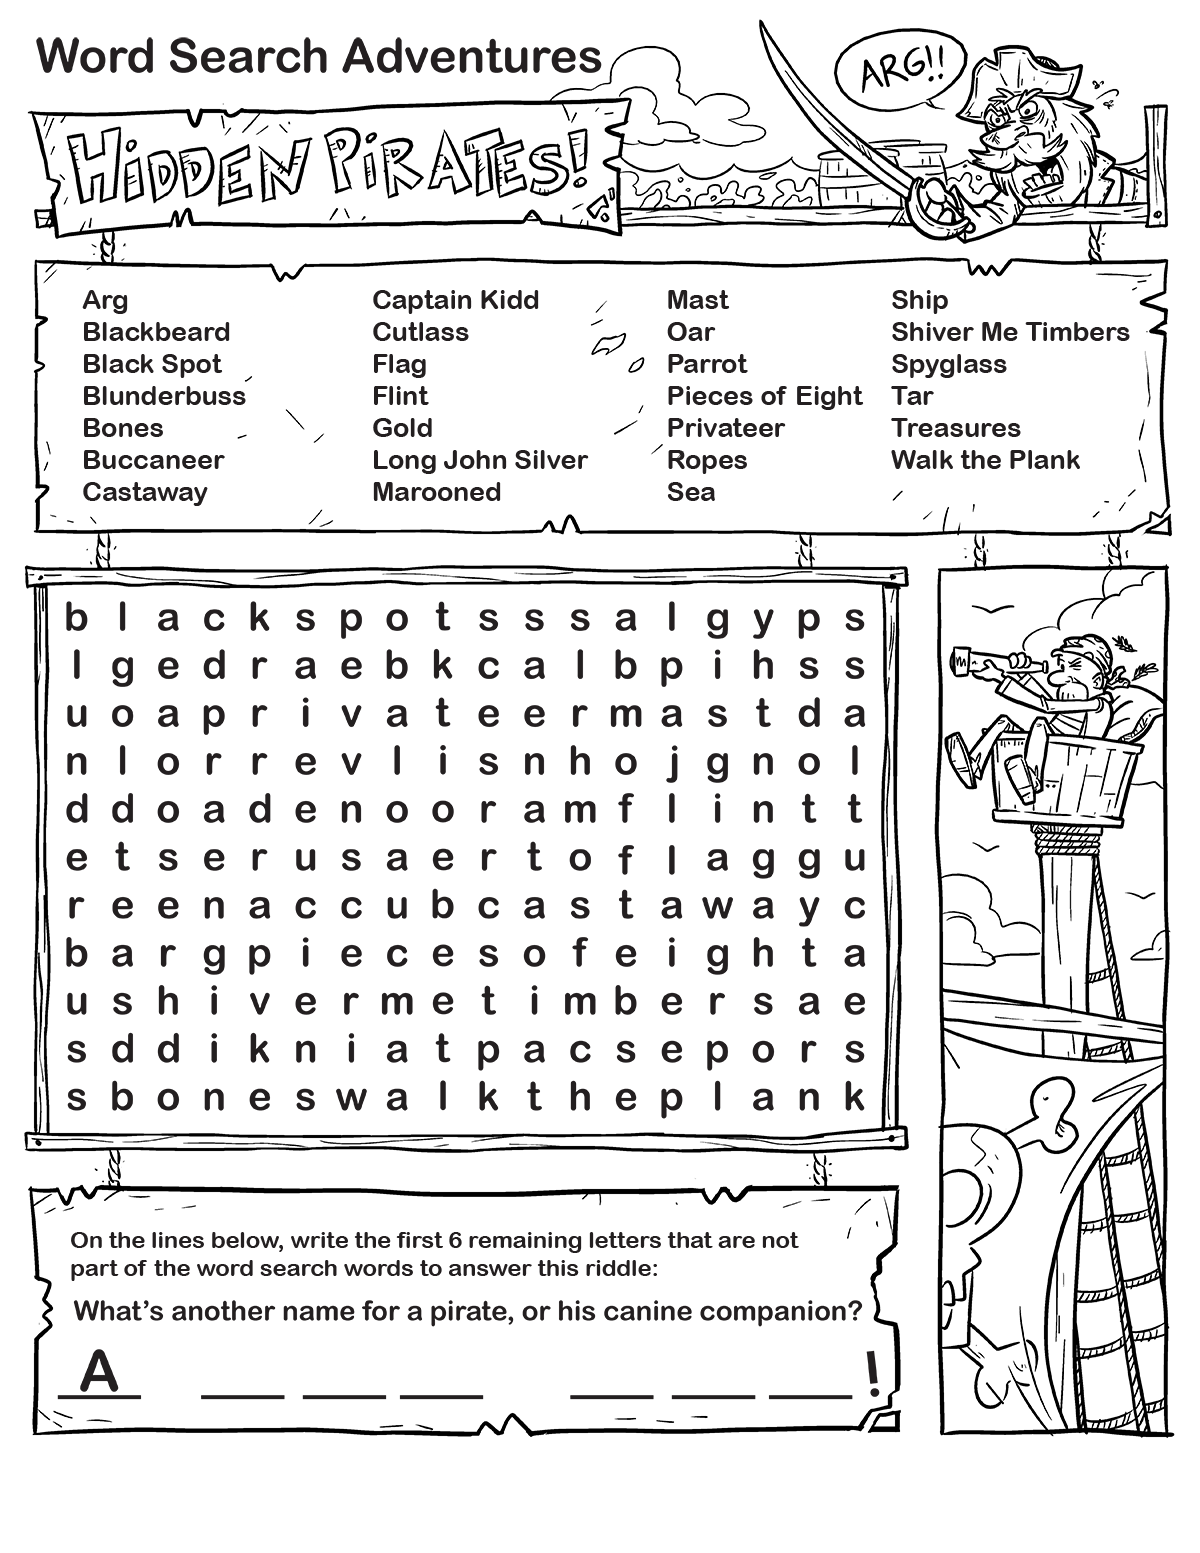 pirate-word-search-printable